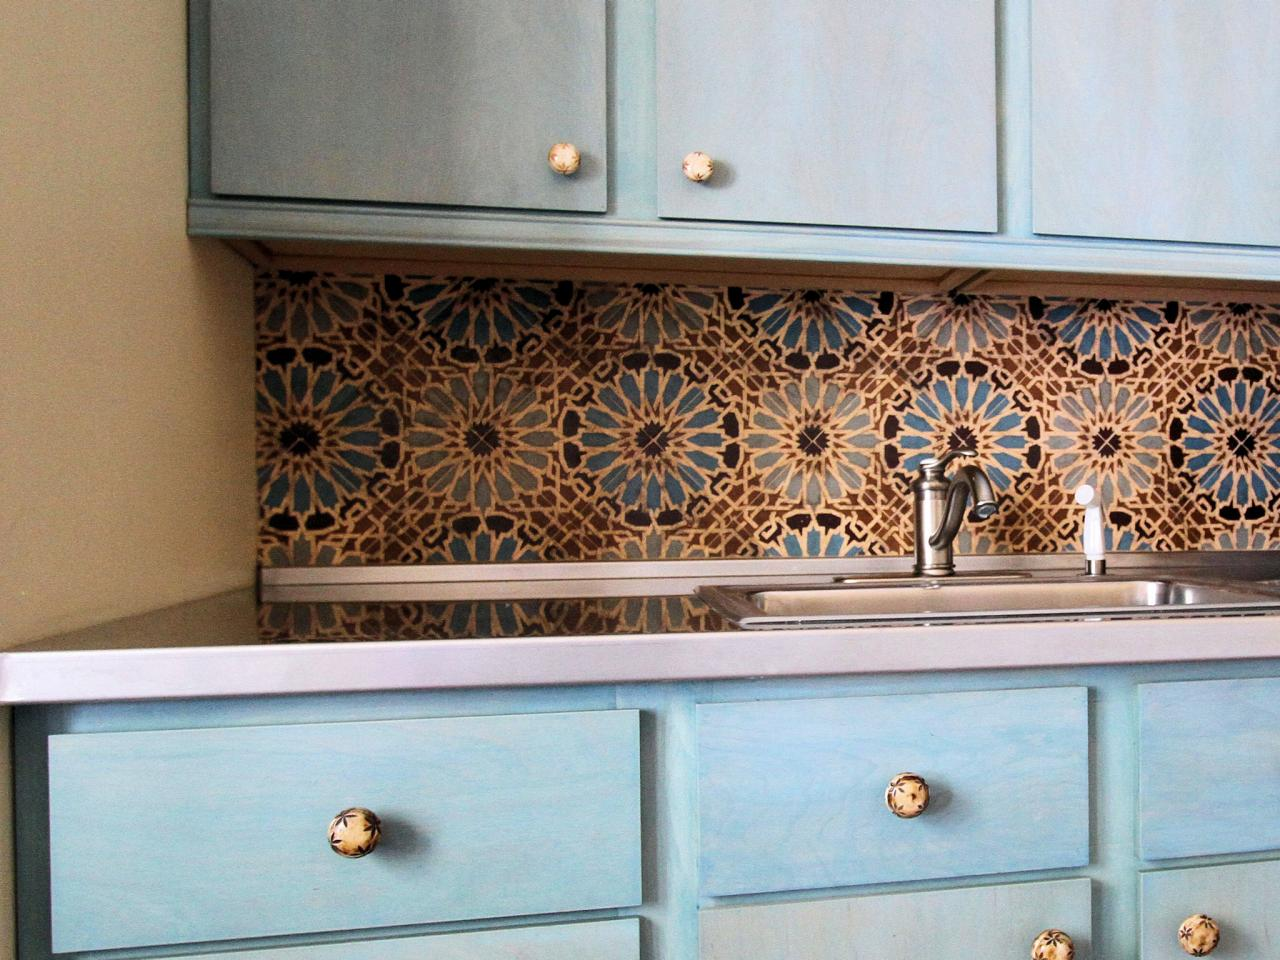 Kitchen tile backsplash ideas pictures tips from hgtv for Great kitchen tile ideas